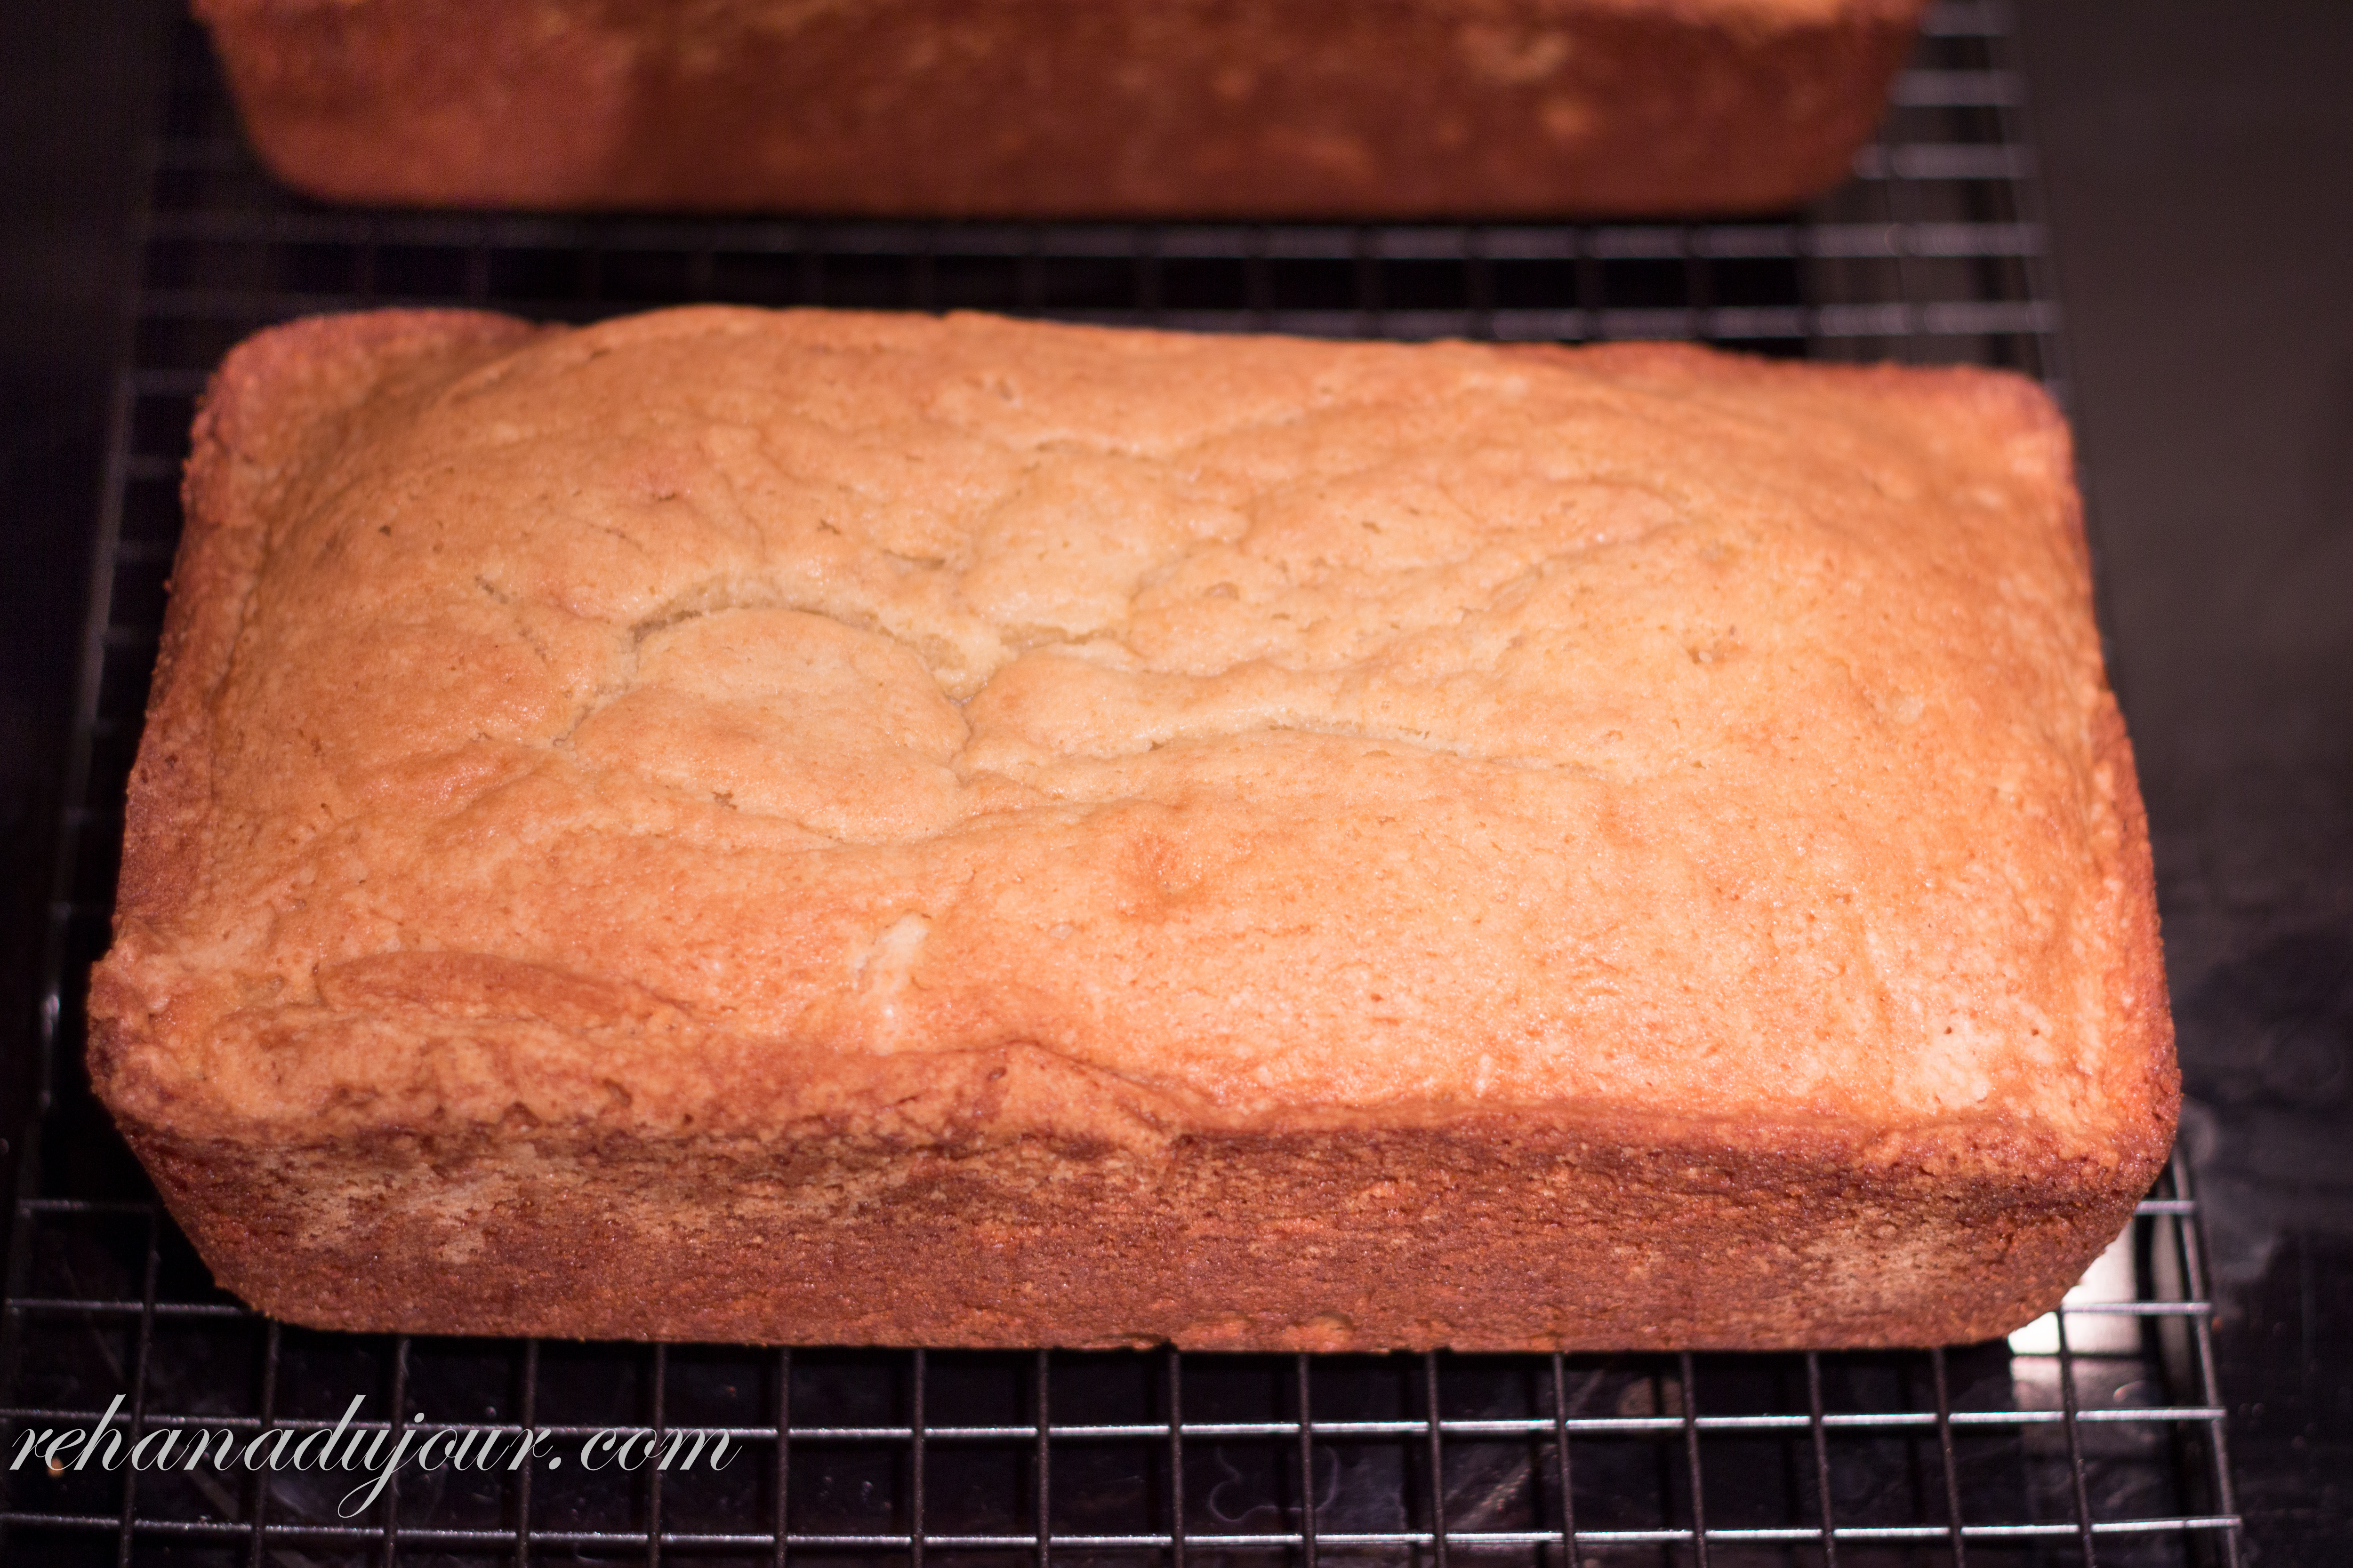 ... and I recommend you follow these steps to get the perfect pound cake